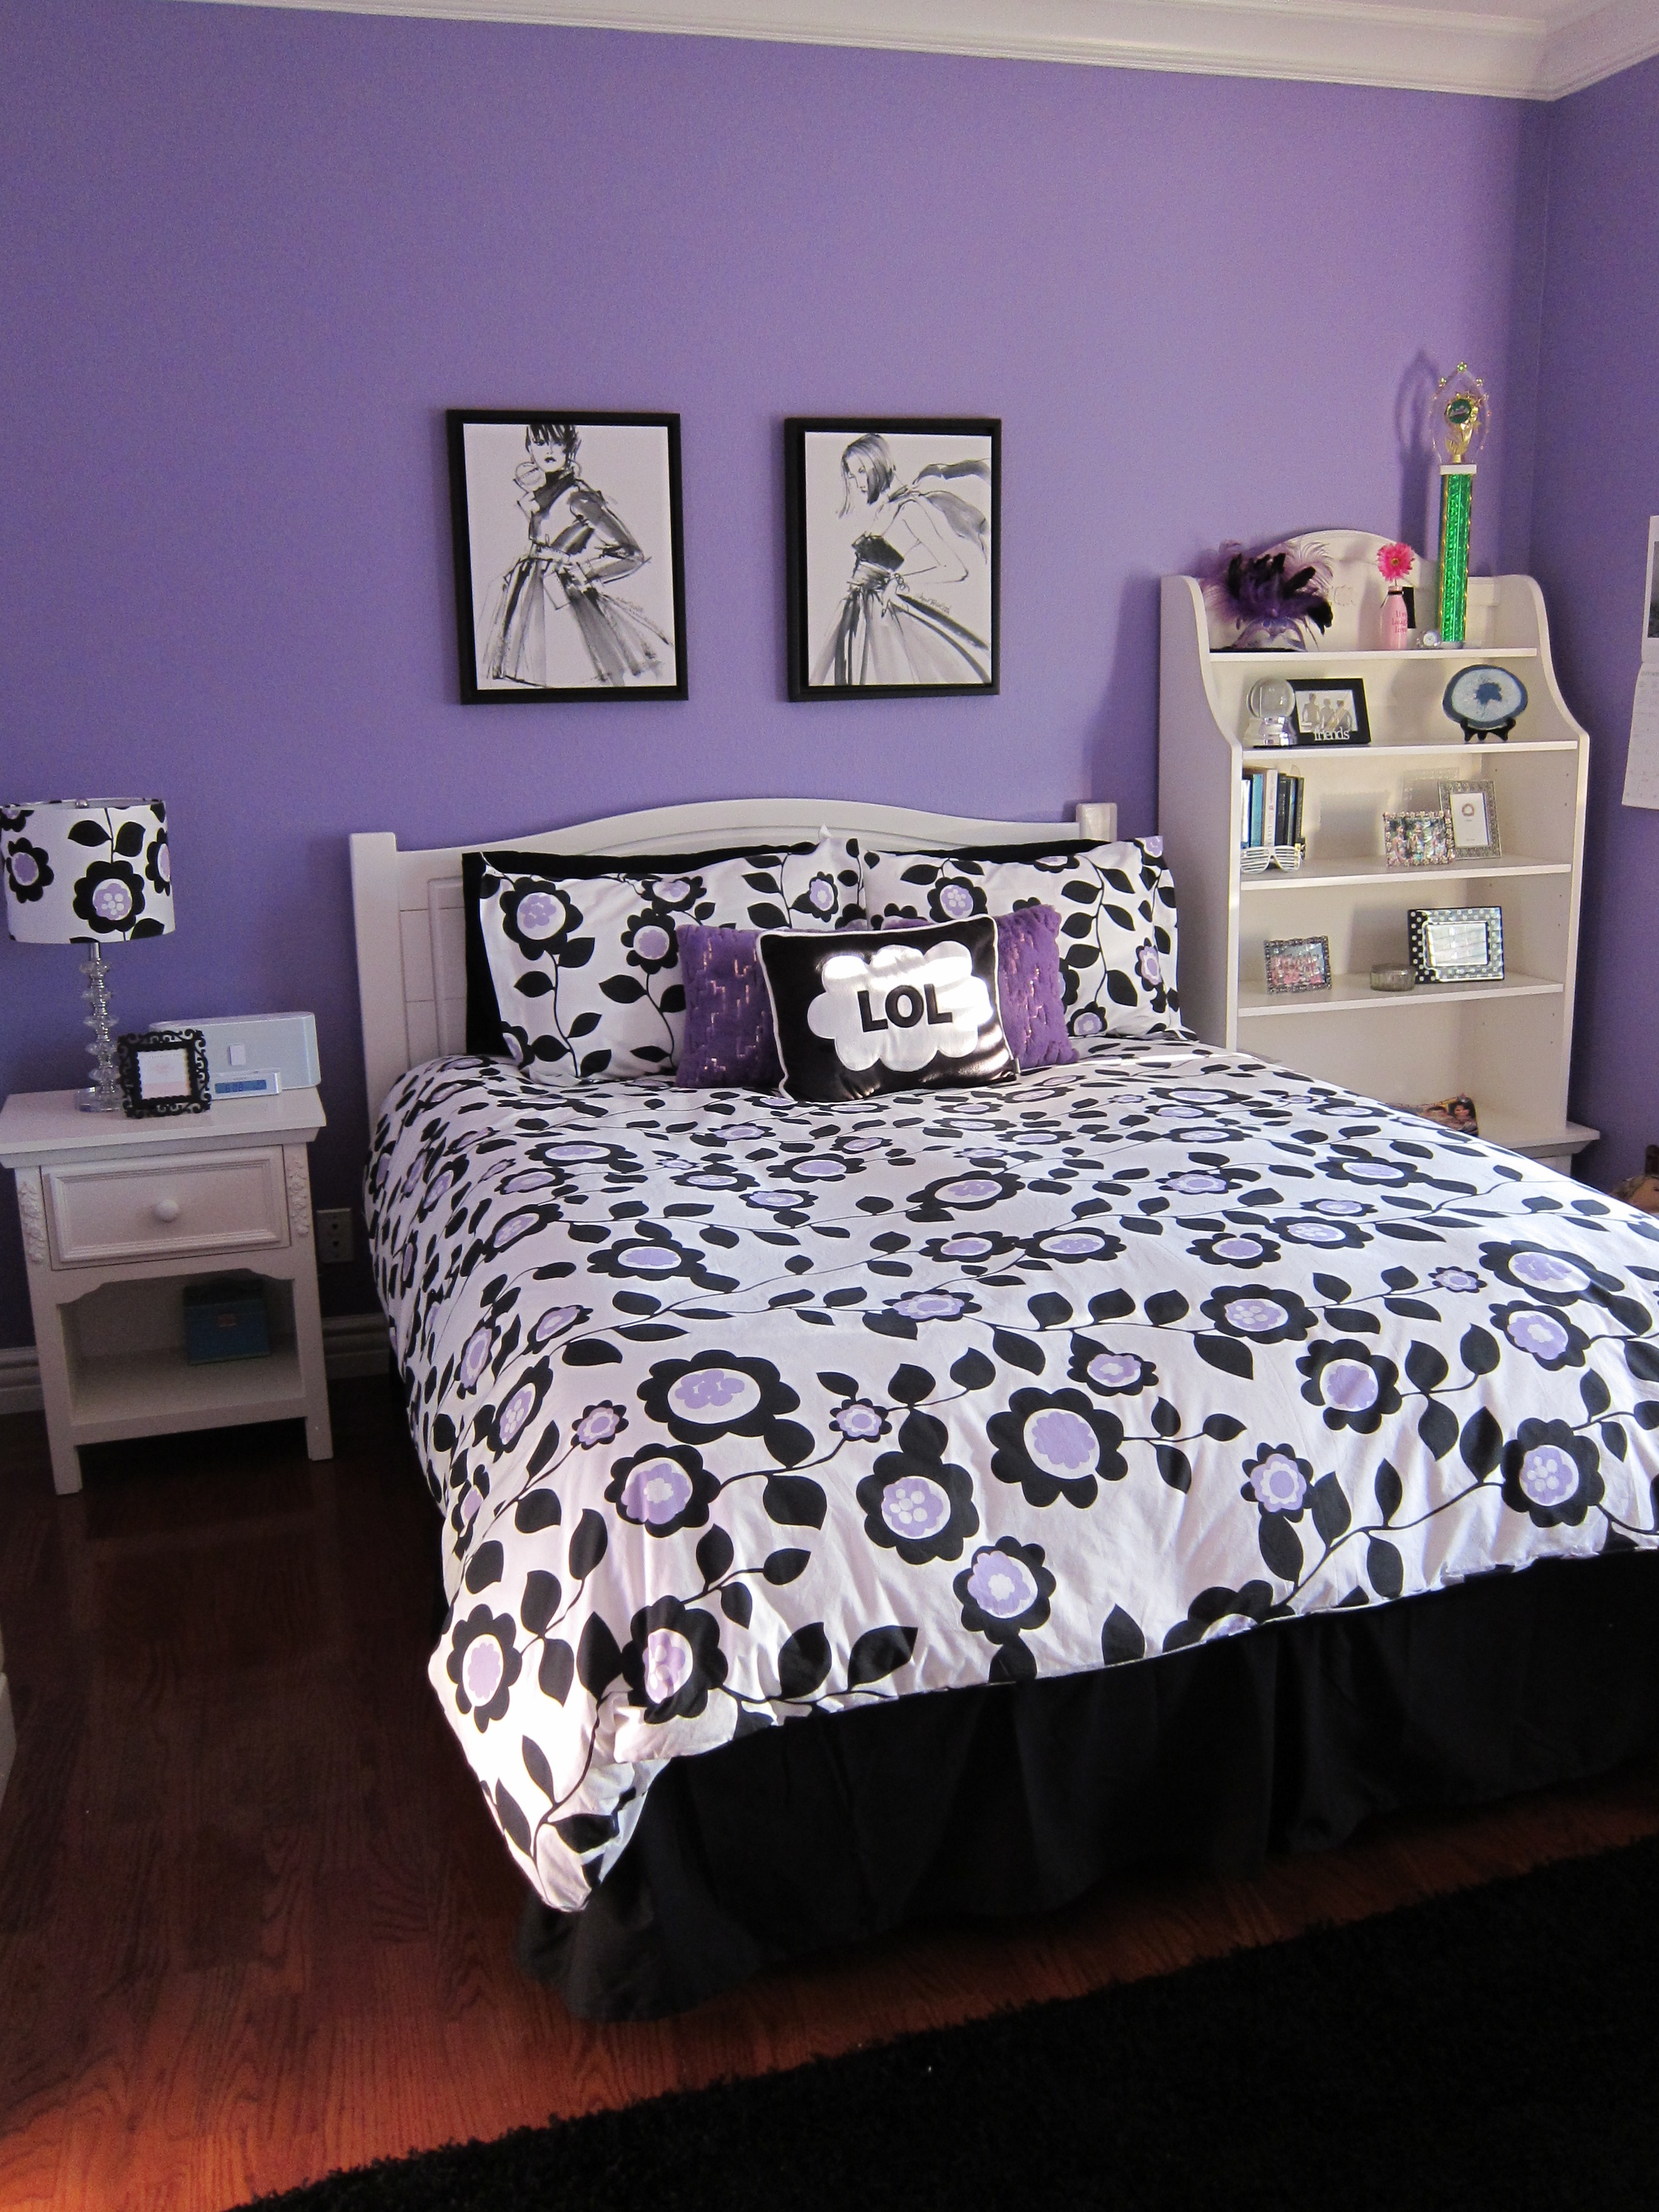 A Teen Bedroom Makeover  Loris favorite things